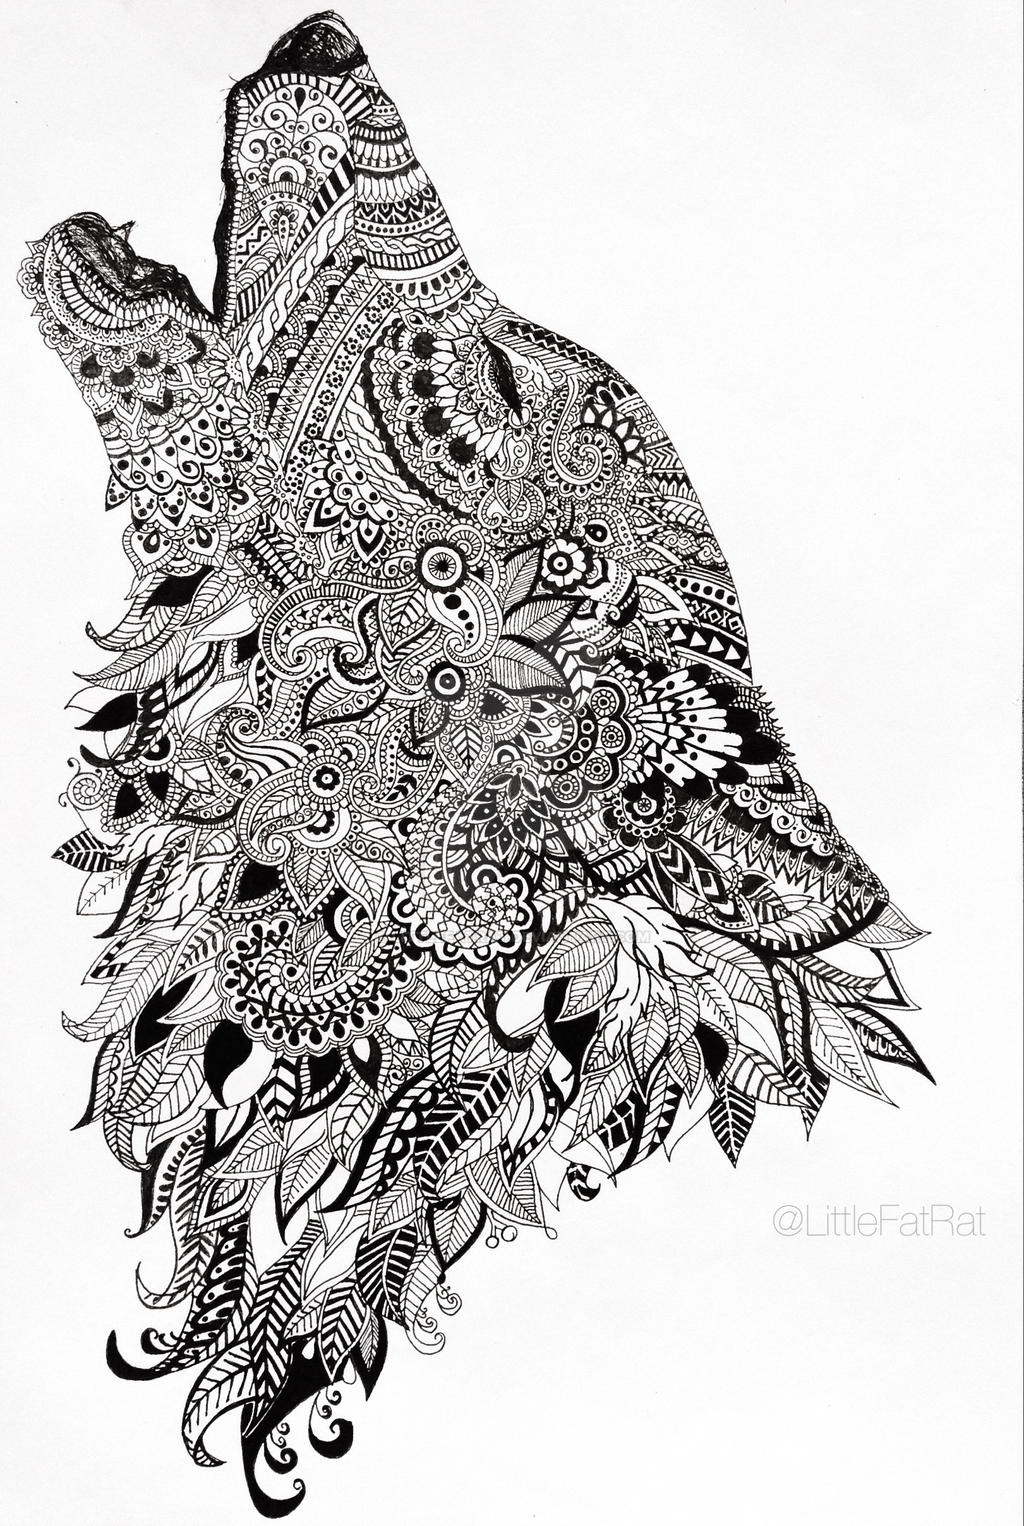 howling wolf zentangle by littlefatrat on deviantart